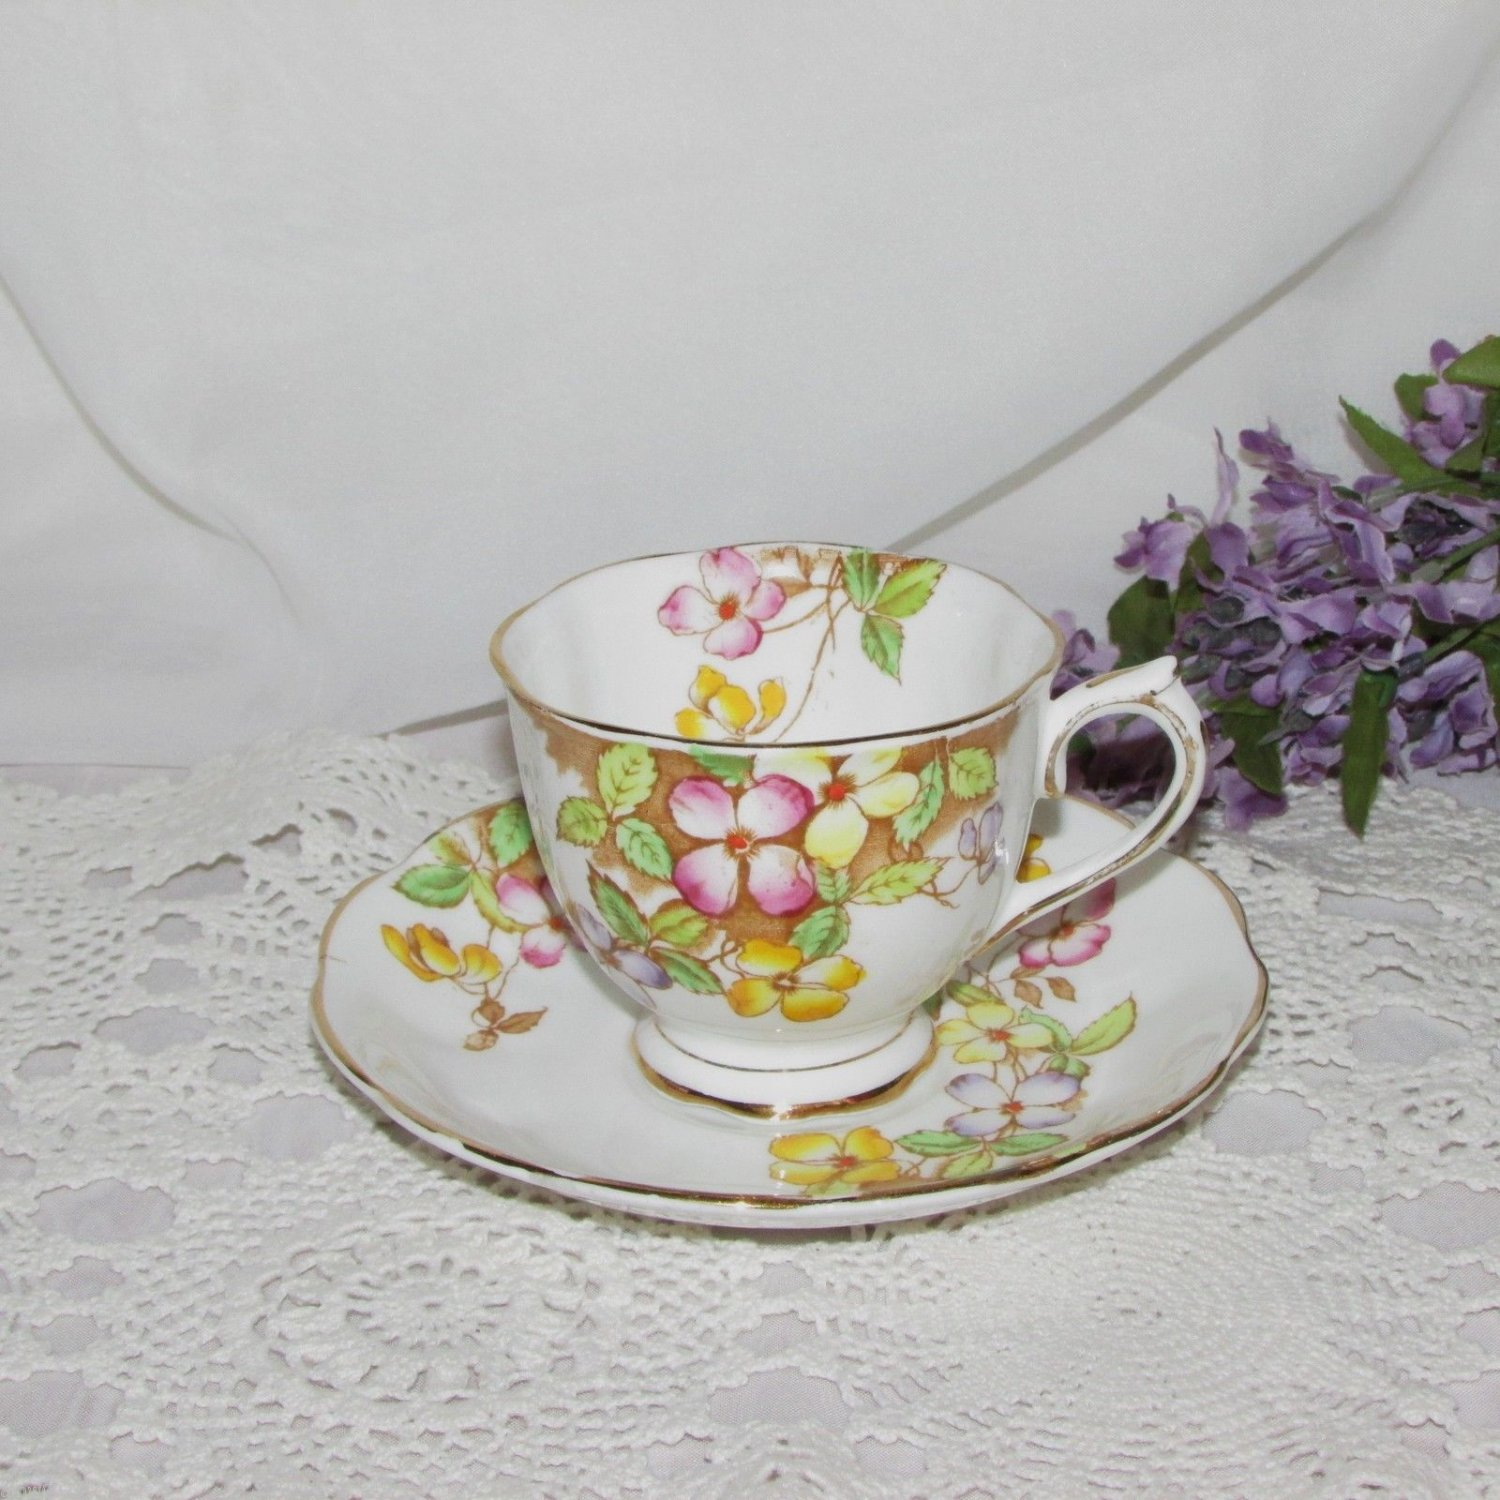 ROYAL ALBERT CUP & SAUCER CLEMATIS HAND PAINTED FLOWERS ENGLISH BONE CHINA